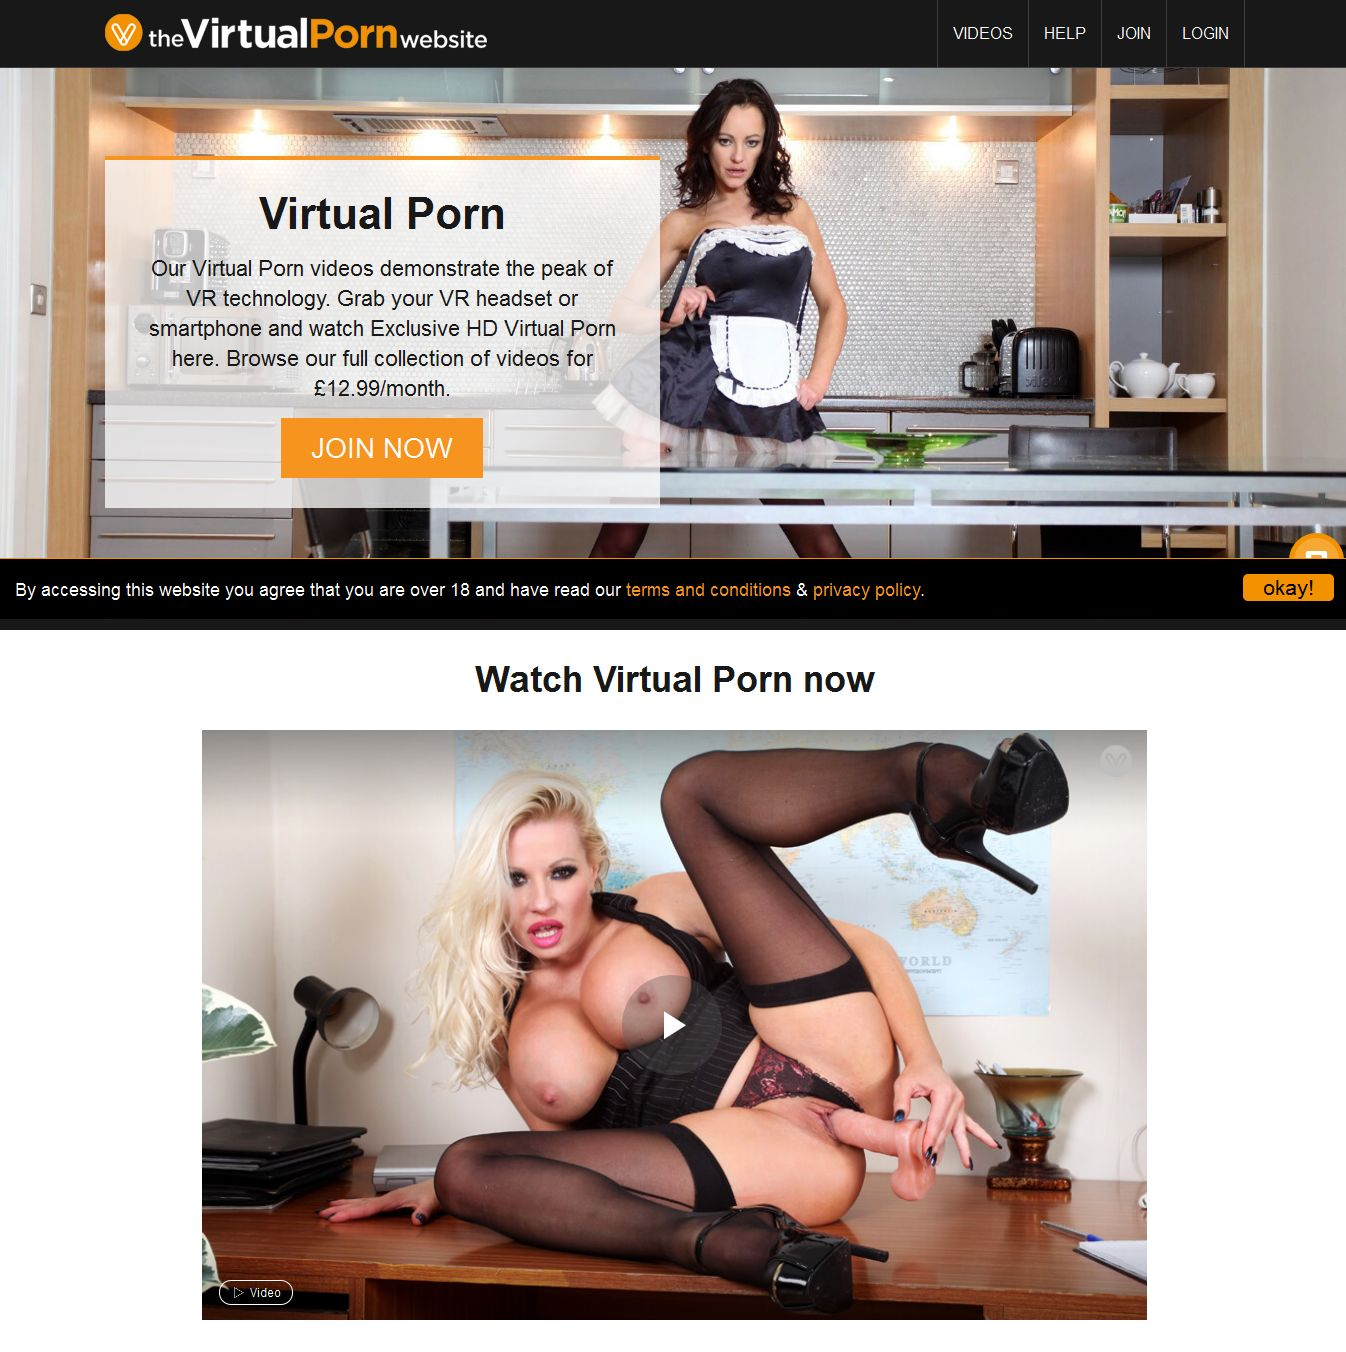 The Virtual Porn Website